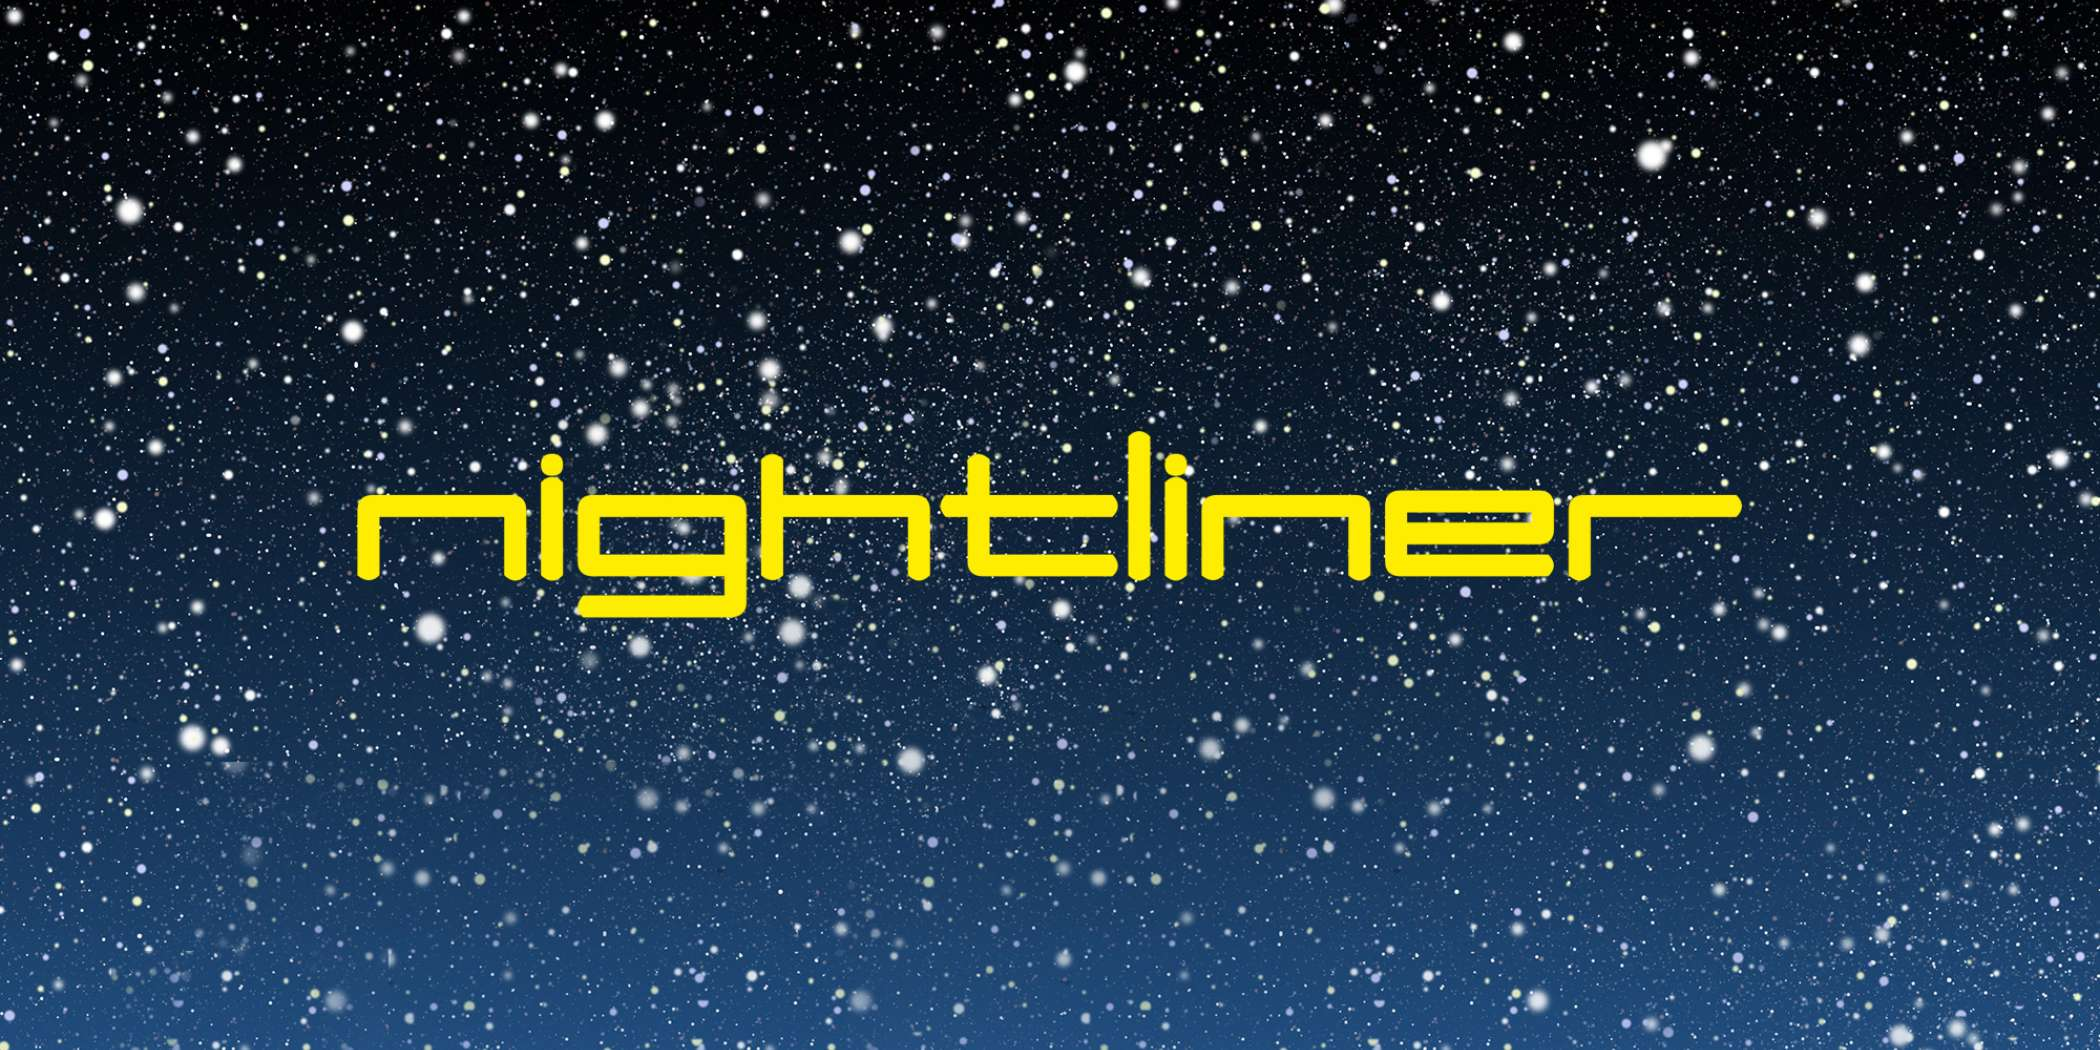 nightliner-01